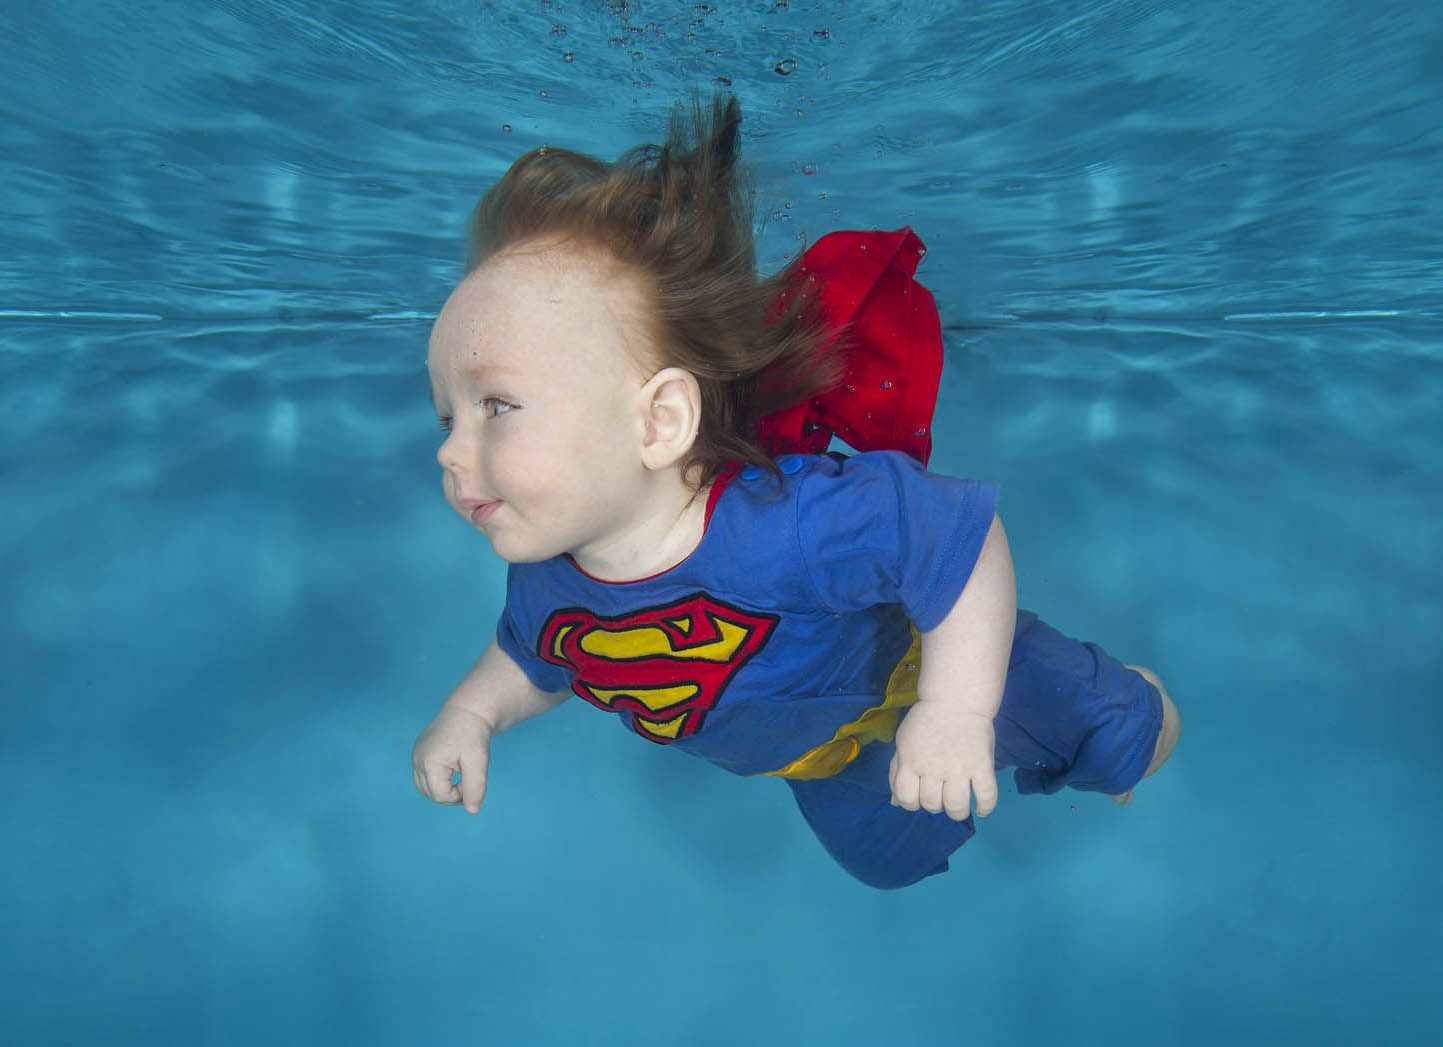 Super baby underwater! This is one of our costumes so you can try this shot too!